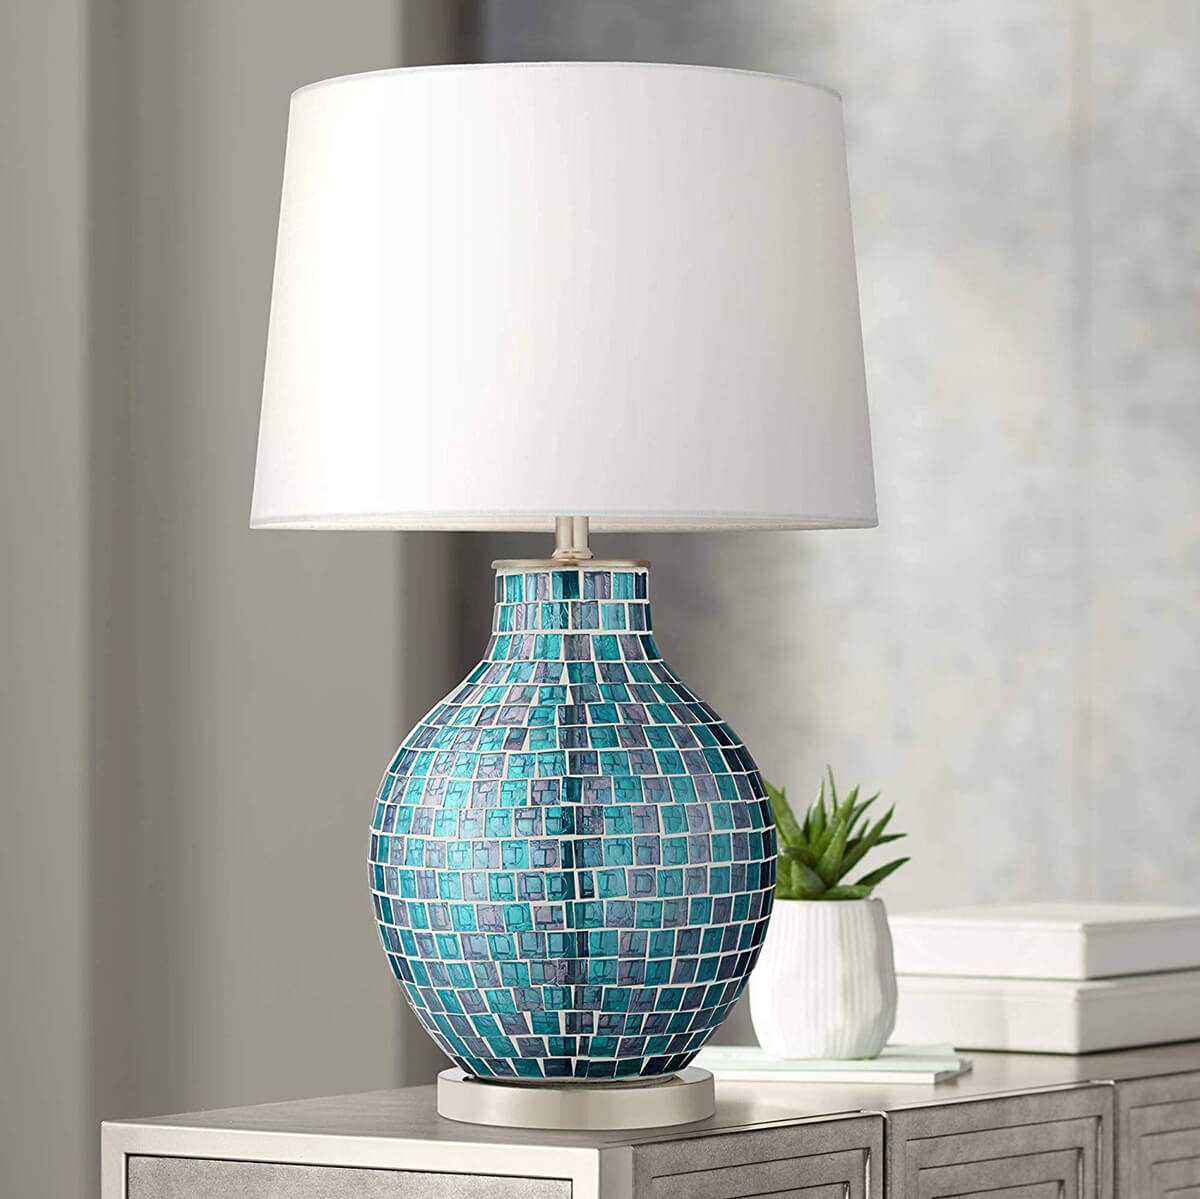 Mosaic Sets the Mood for a Classic Table Lamp